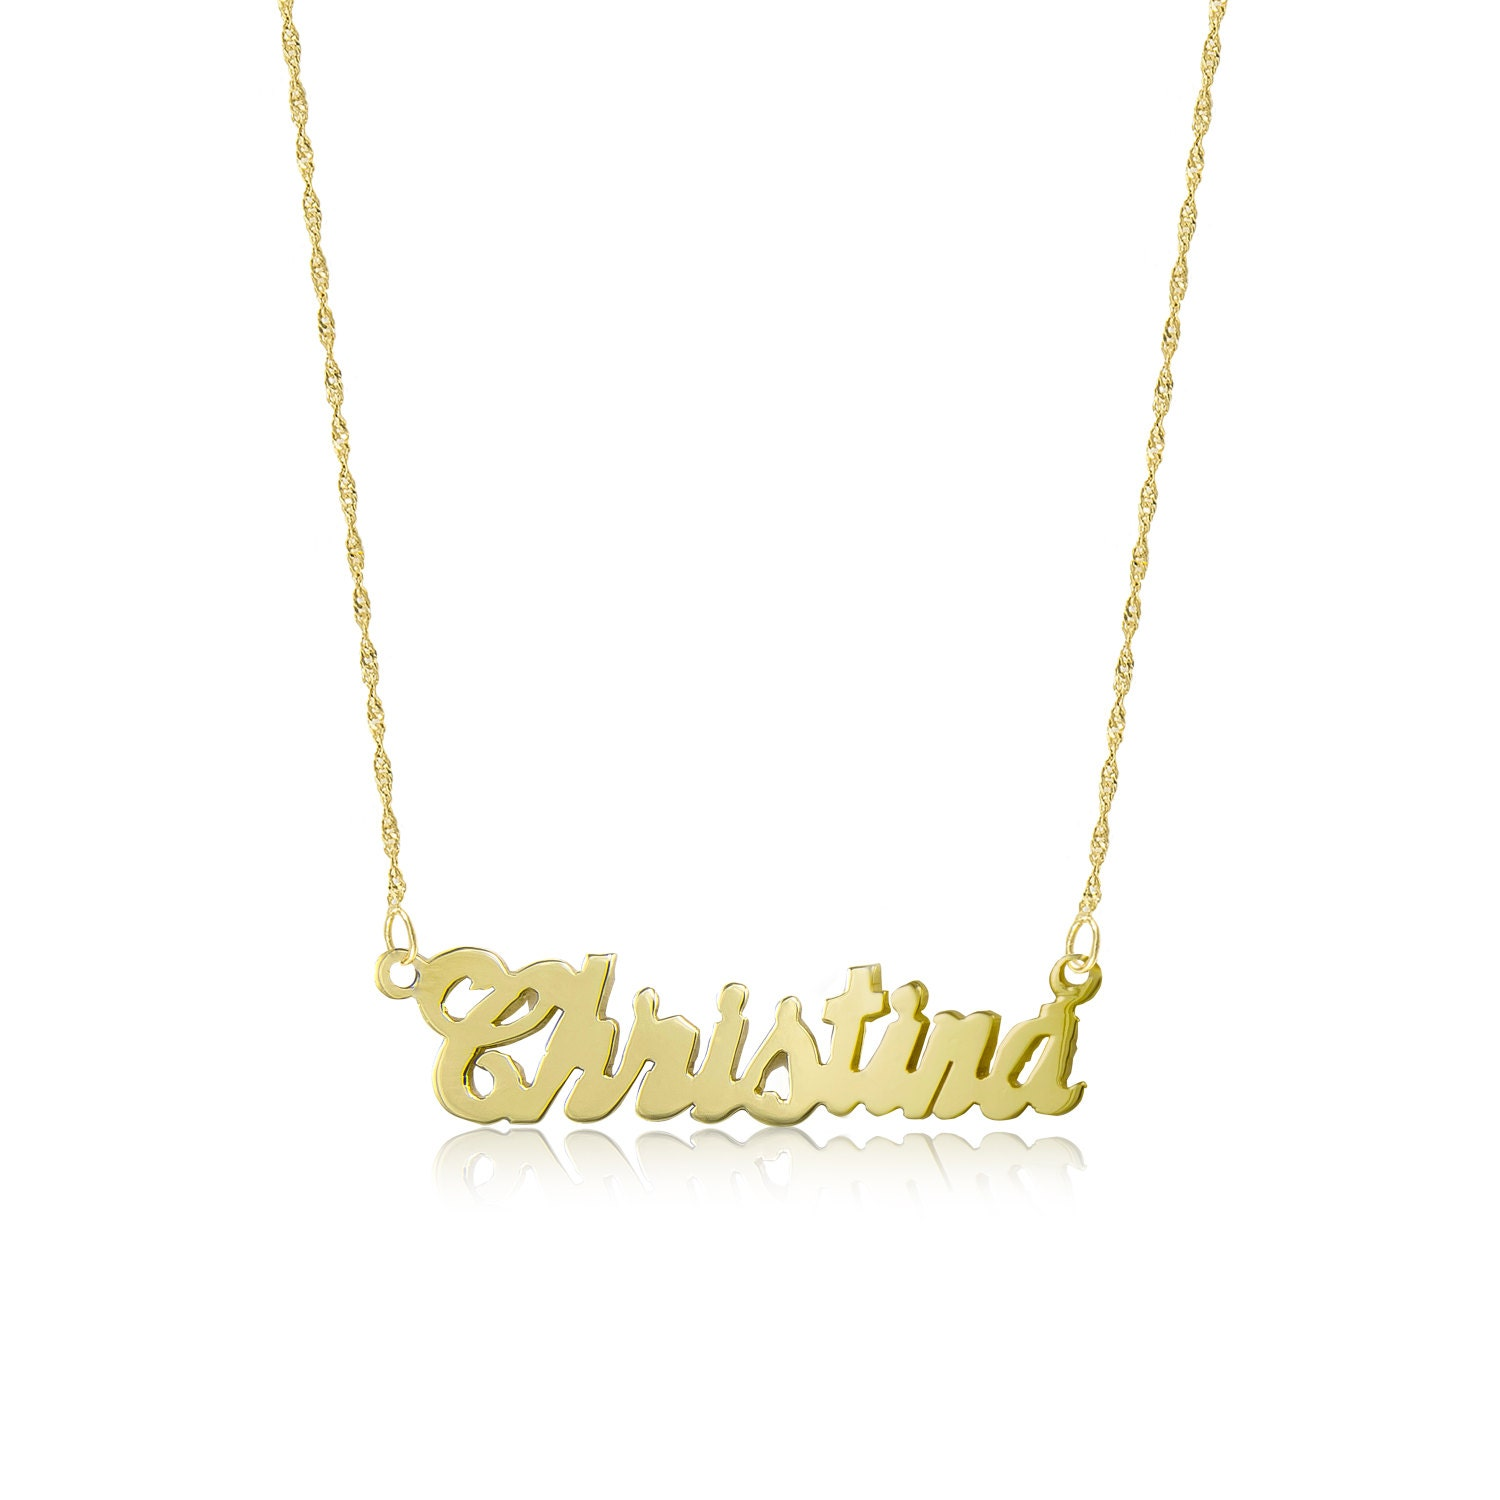 brass collections name cursive snash knife necklace all gp jewelry necklaces